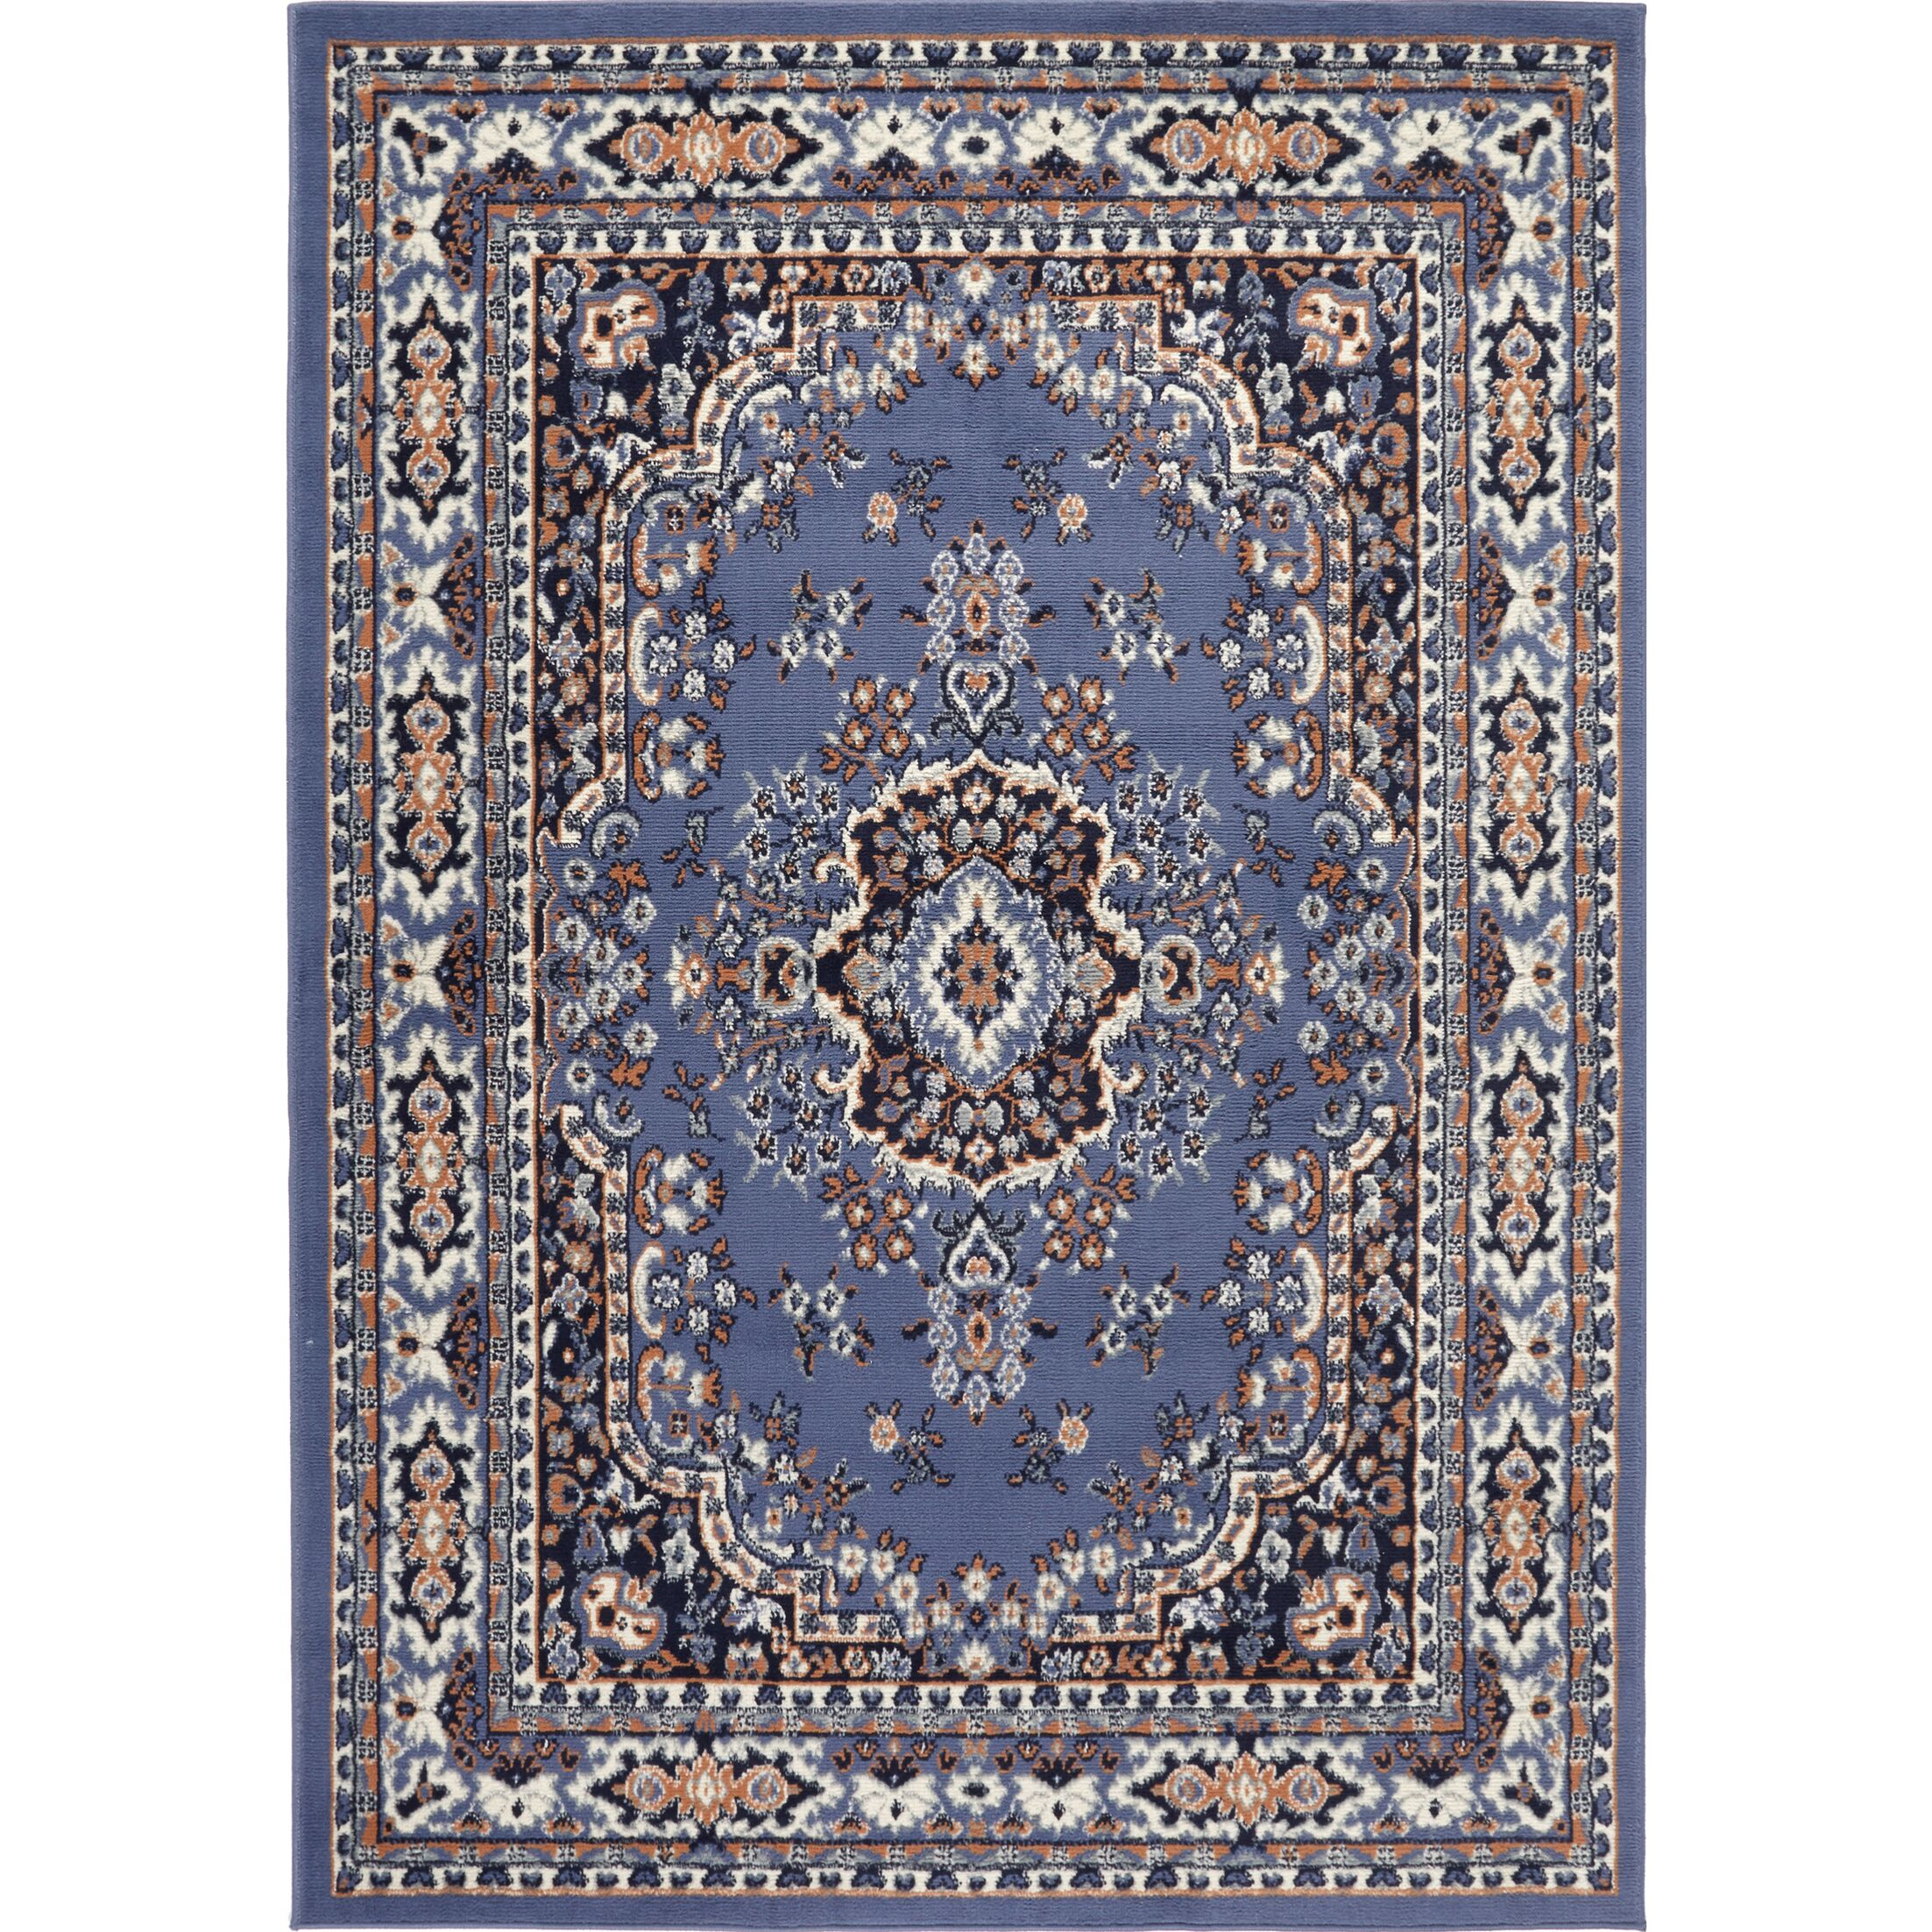 Lilly Country Blue Area Rug Rug Size: Rectangle 7'9